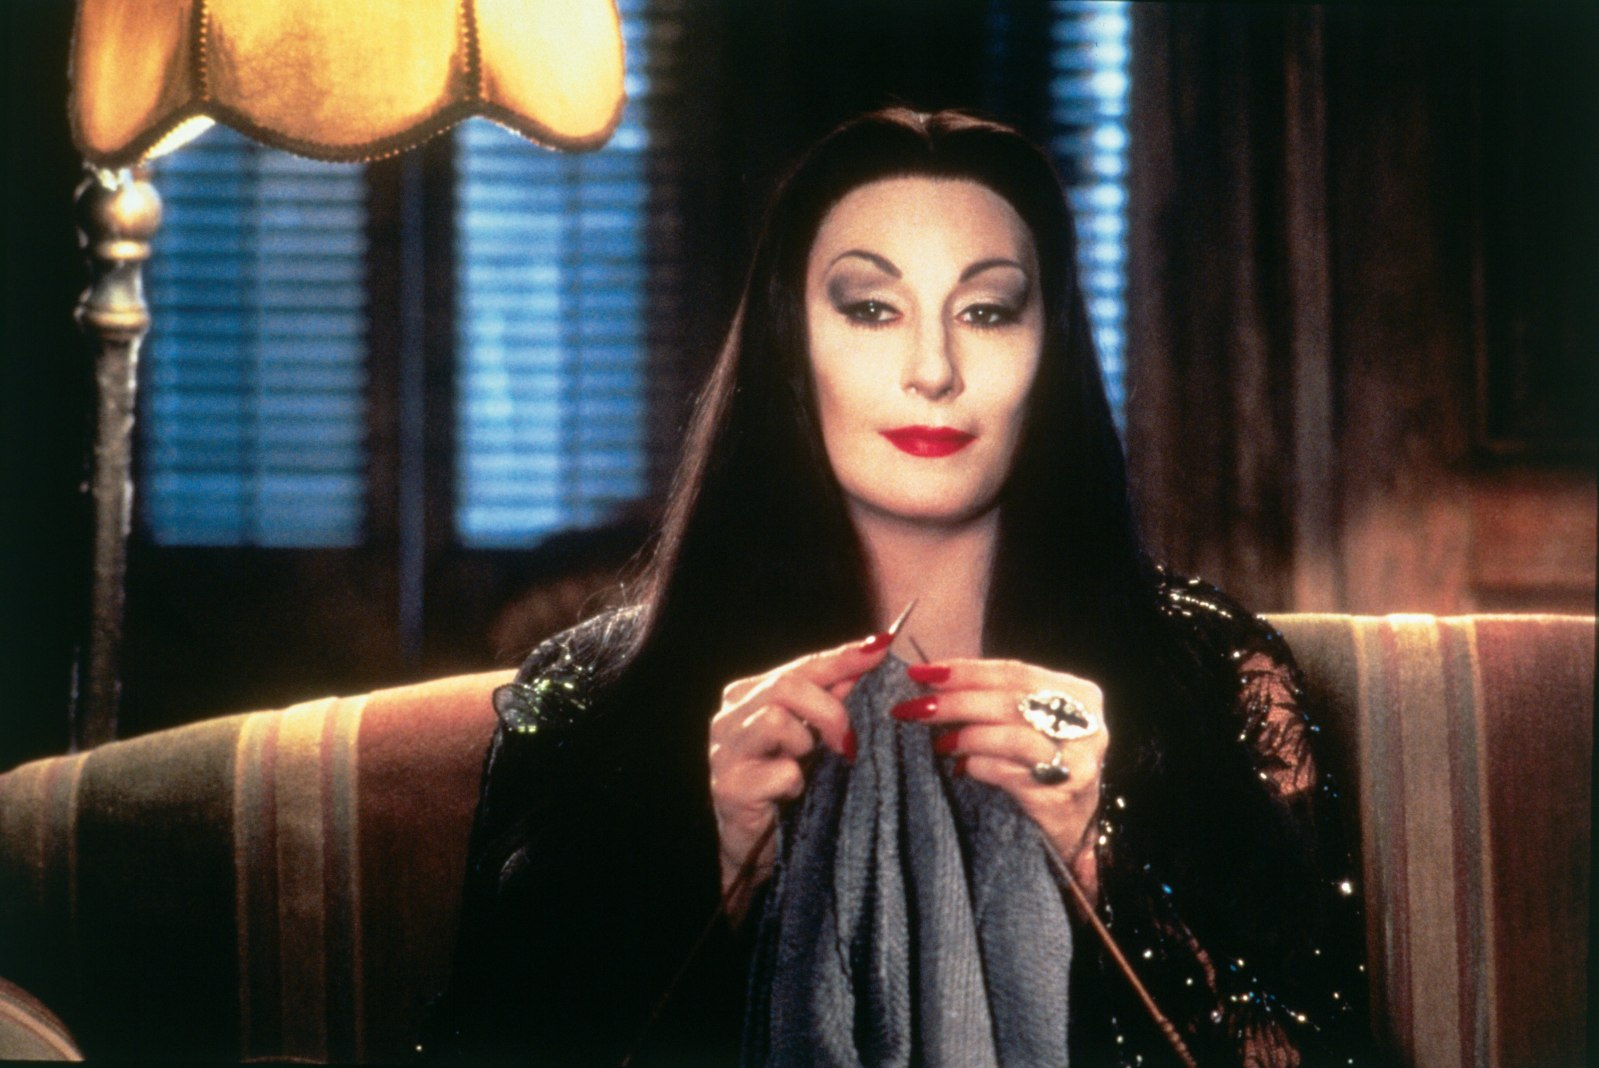 Morticia Addams Wallpaper and Background Image | 1599x1068